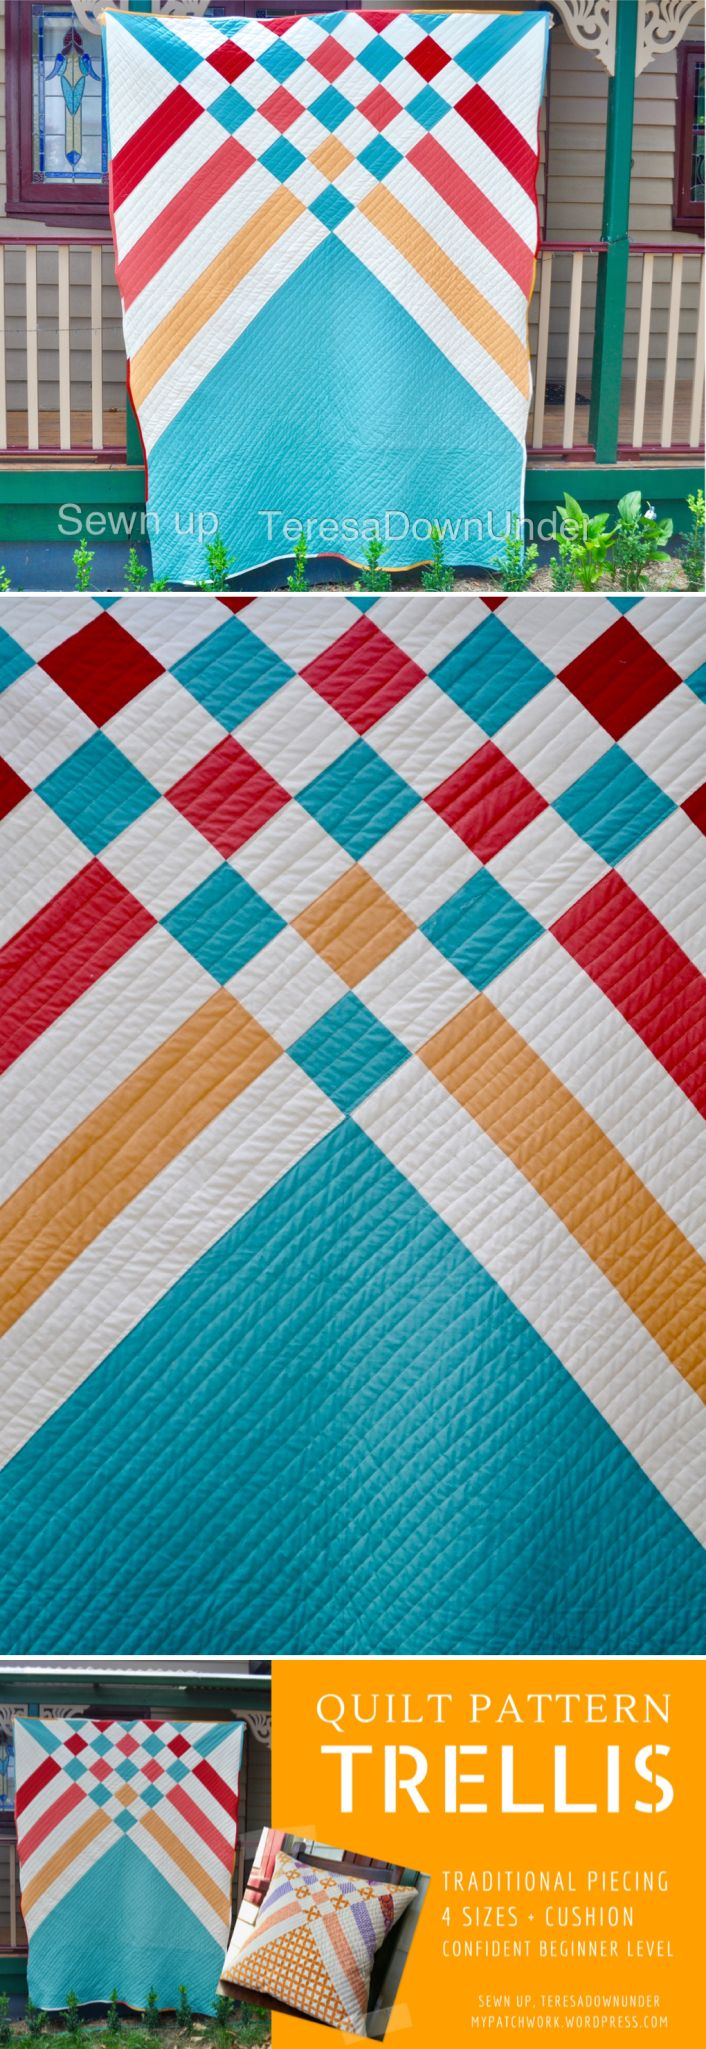 Modern Quilt Patterns For Beginners : 4199 best images about quilts on Pinterest Square quilt, Fat quarters and Quilt